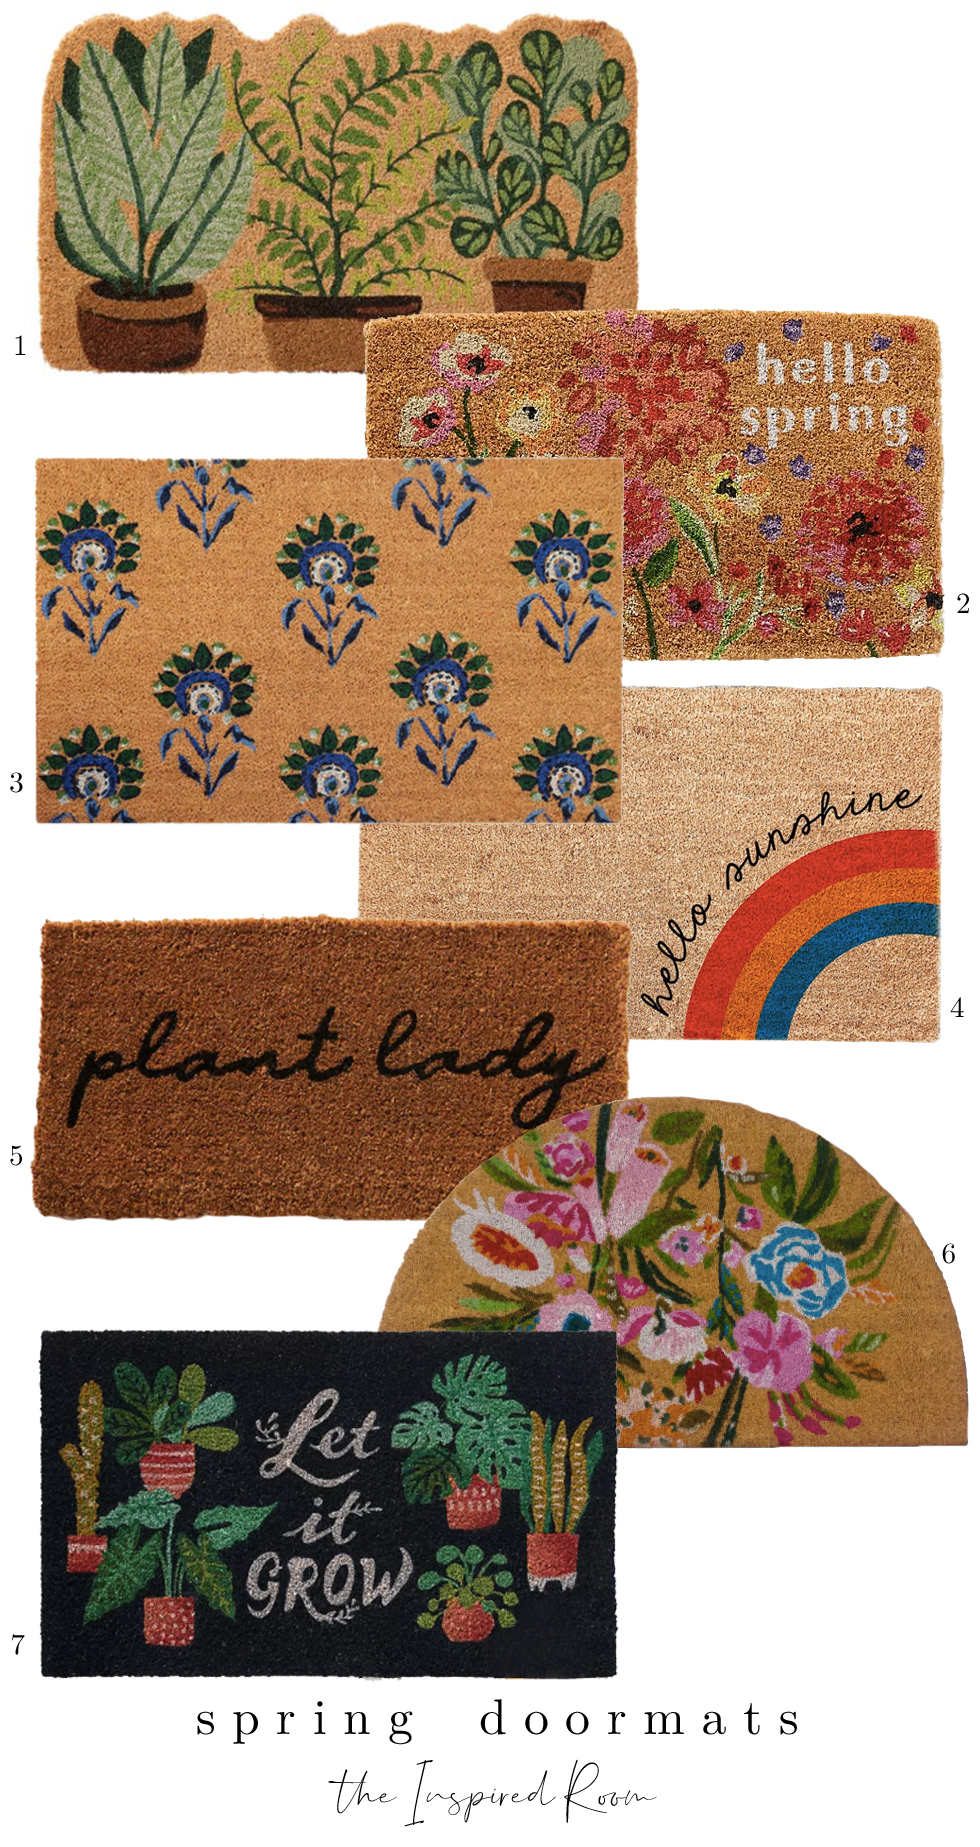 Spring Doormats to Welcome You Home